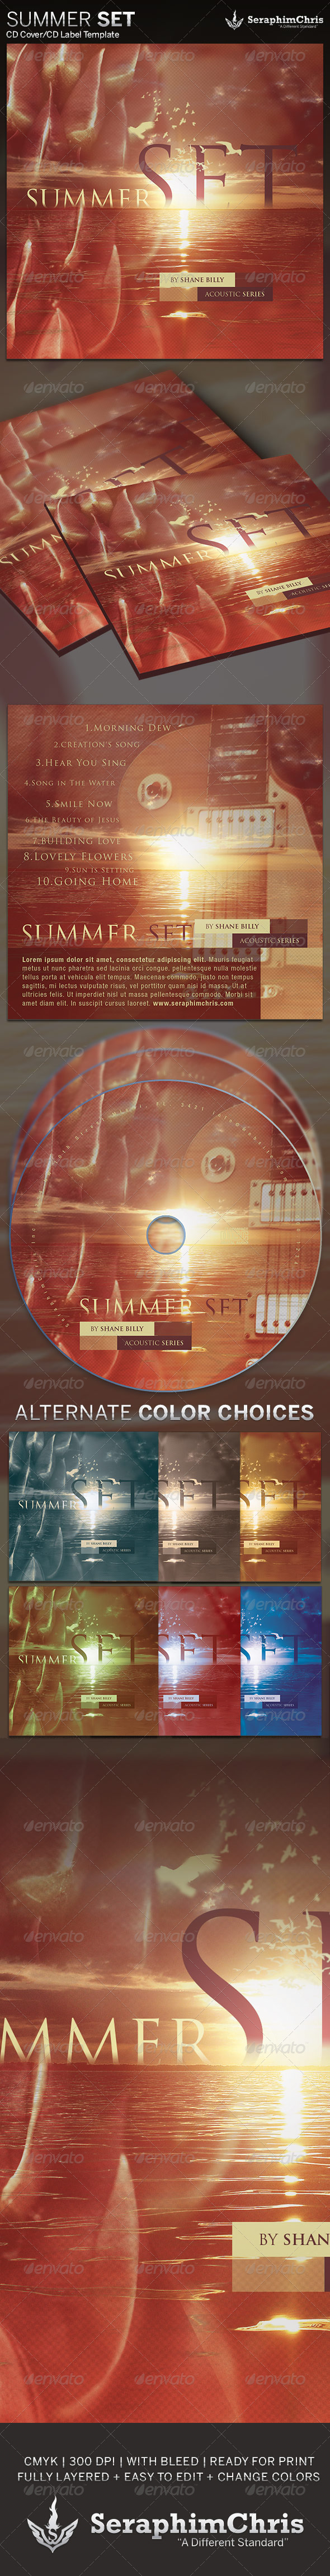 GraphicRiver Summer Set CD Cover Artwork Template 4235059